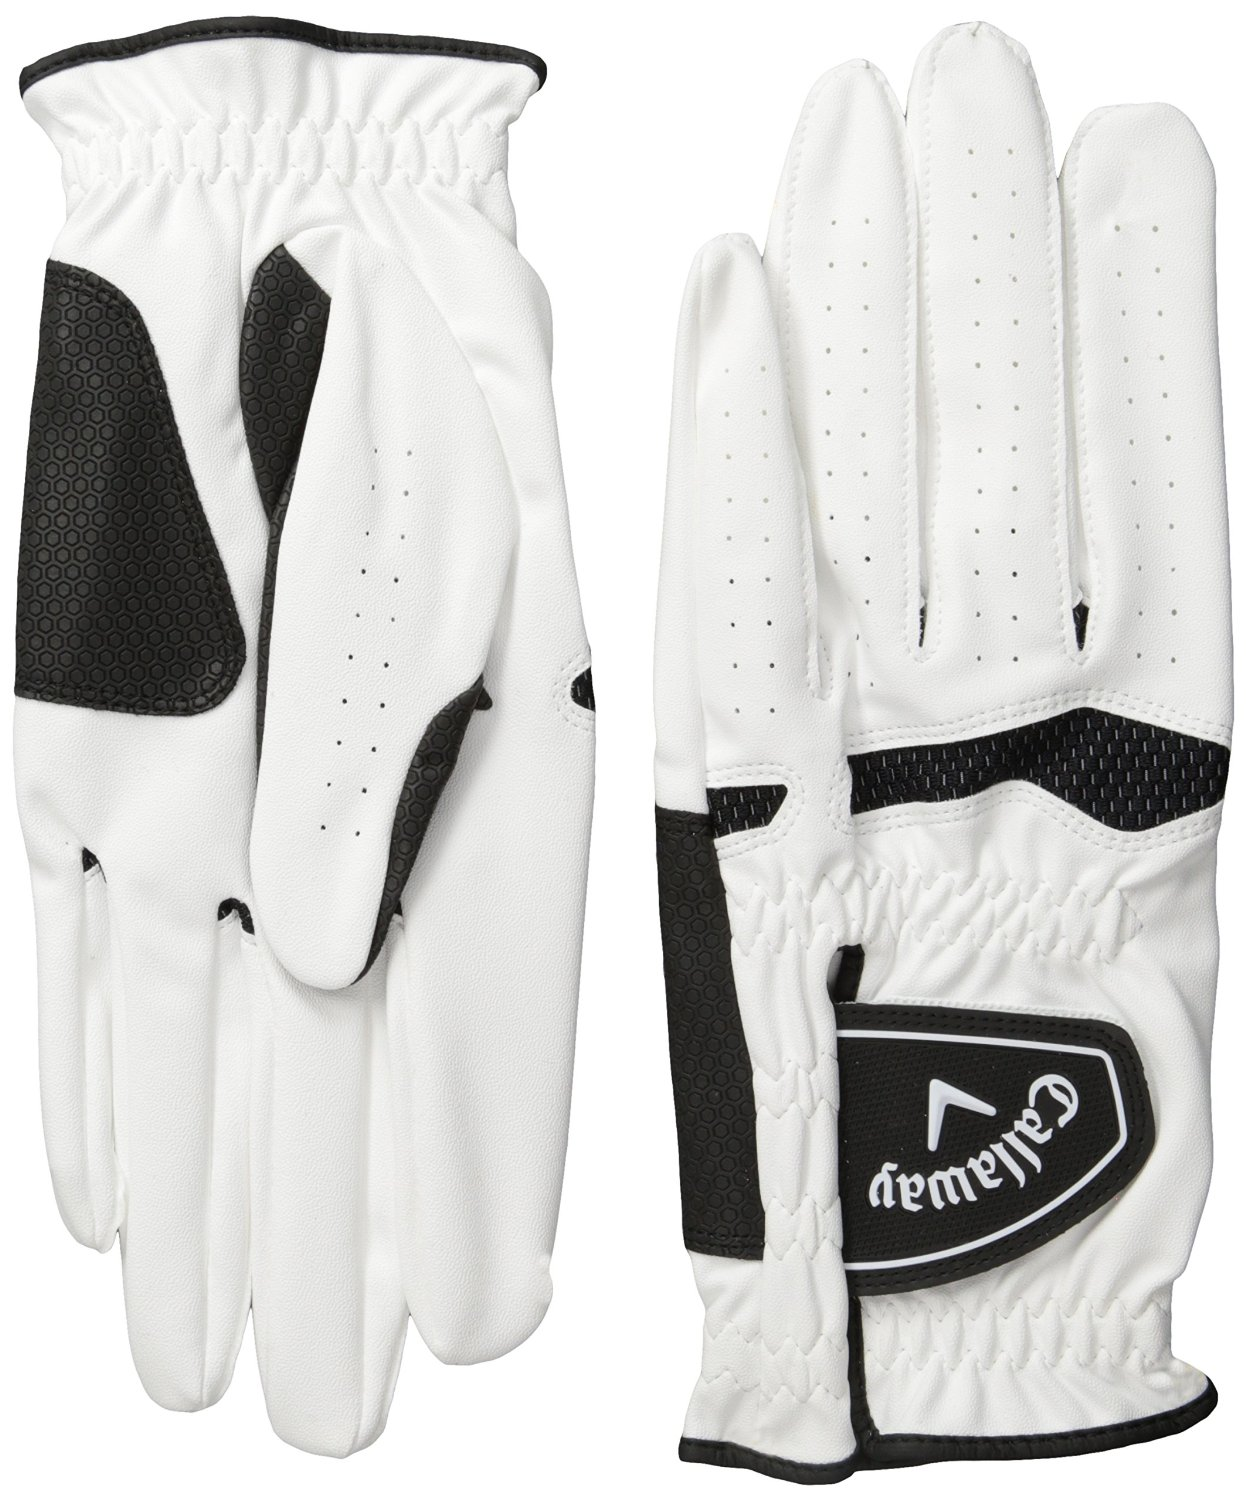 Callaway Mens Golf Gloves